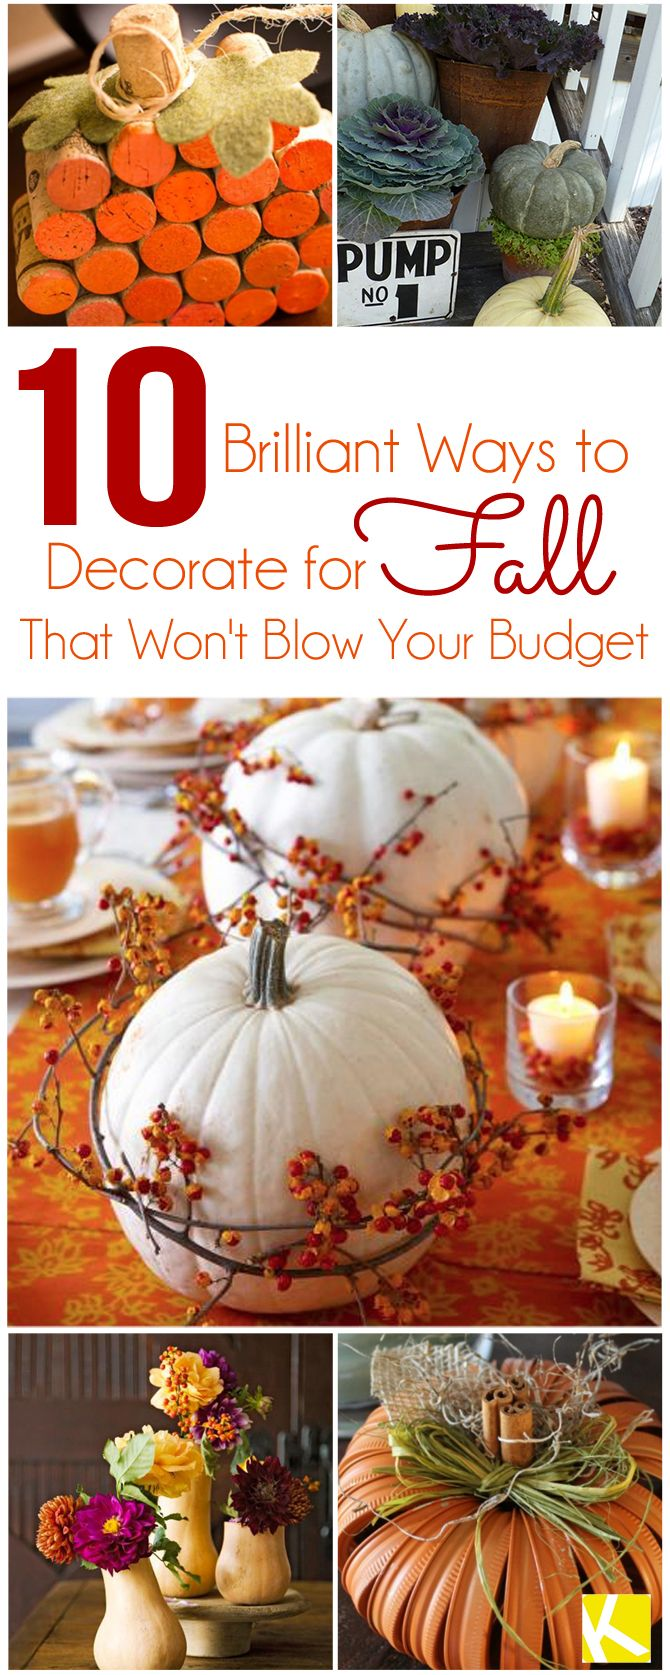 September Decorating Ideas Simple 10 Brilliant Ways To Decorate For Fall That Won't Blow Your Budget . Design Decoration